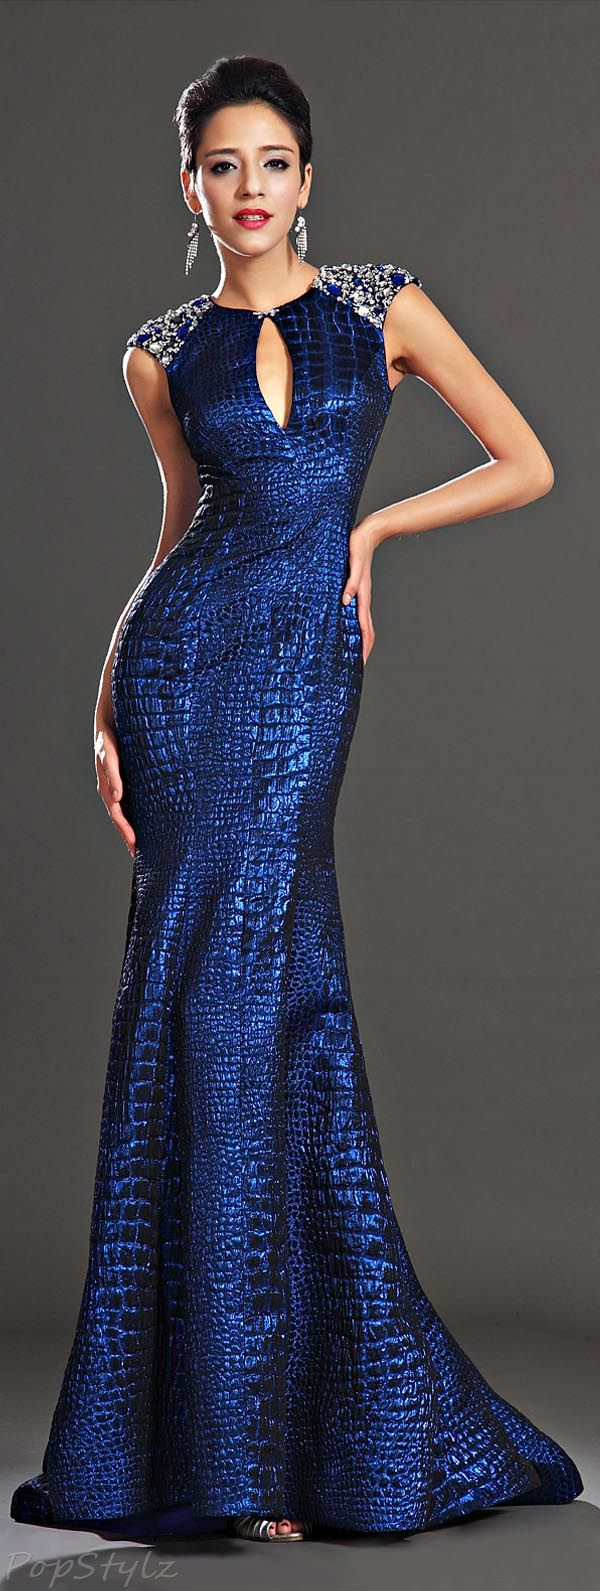 Blue Evening Dress                                                                                                                                                      More